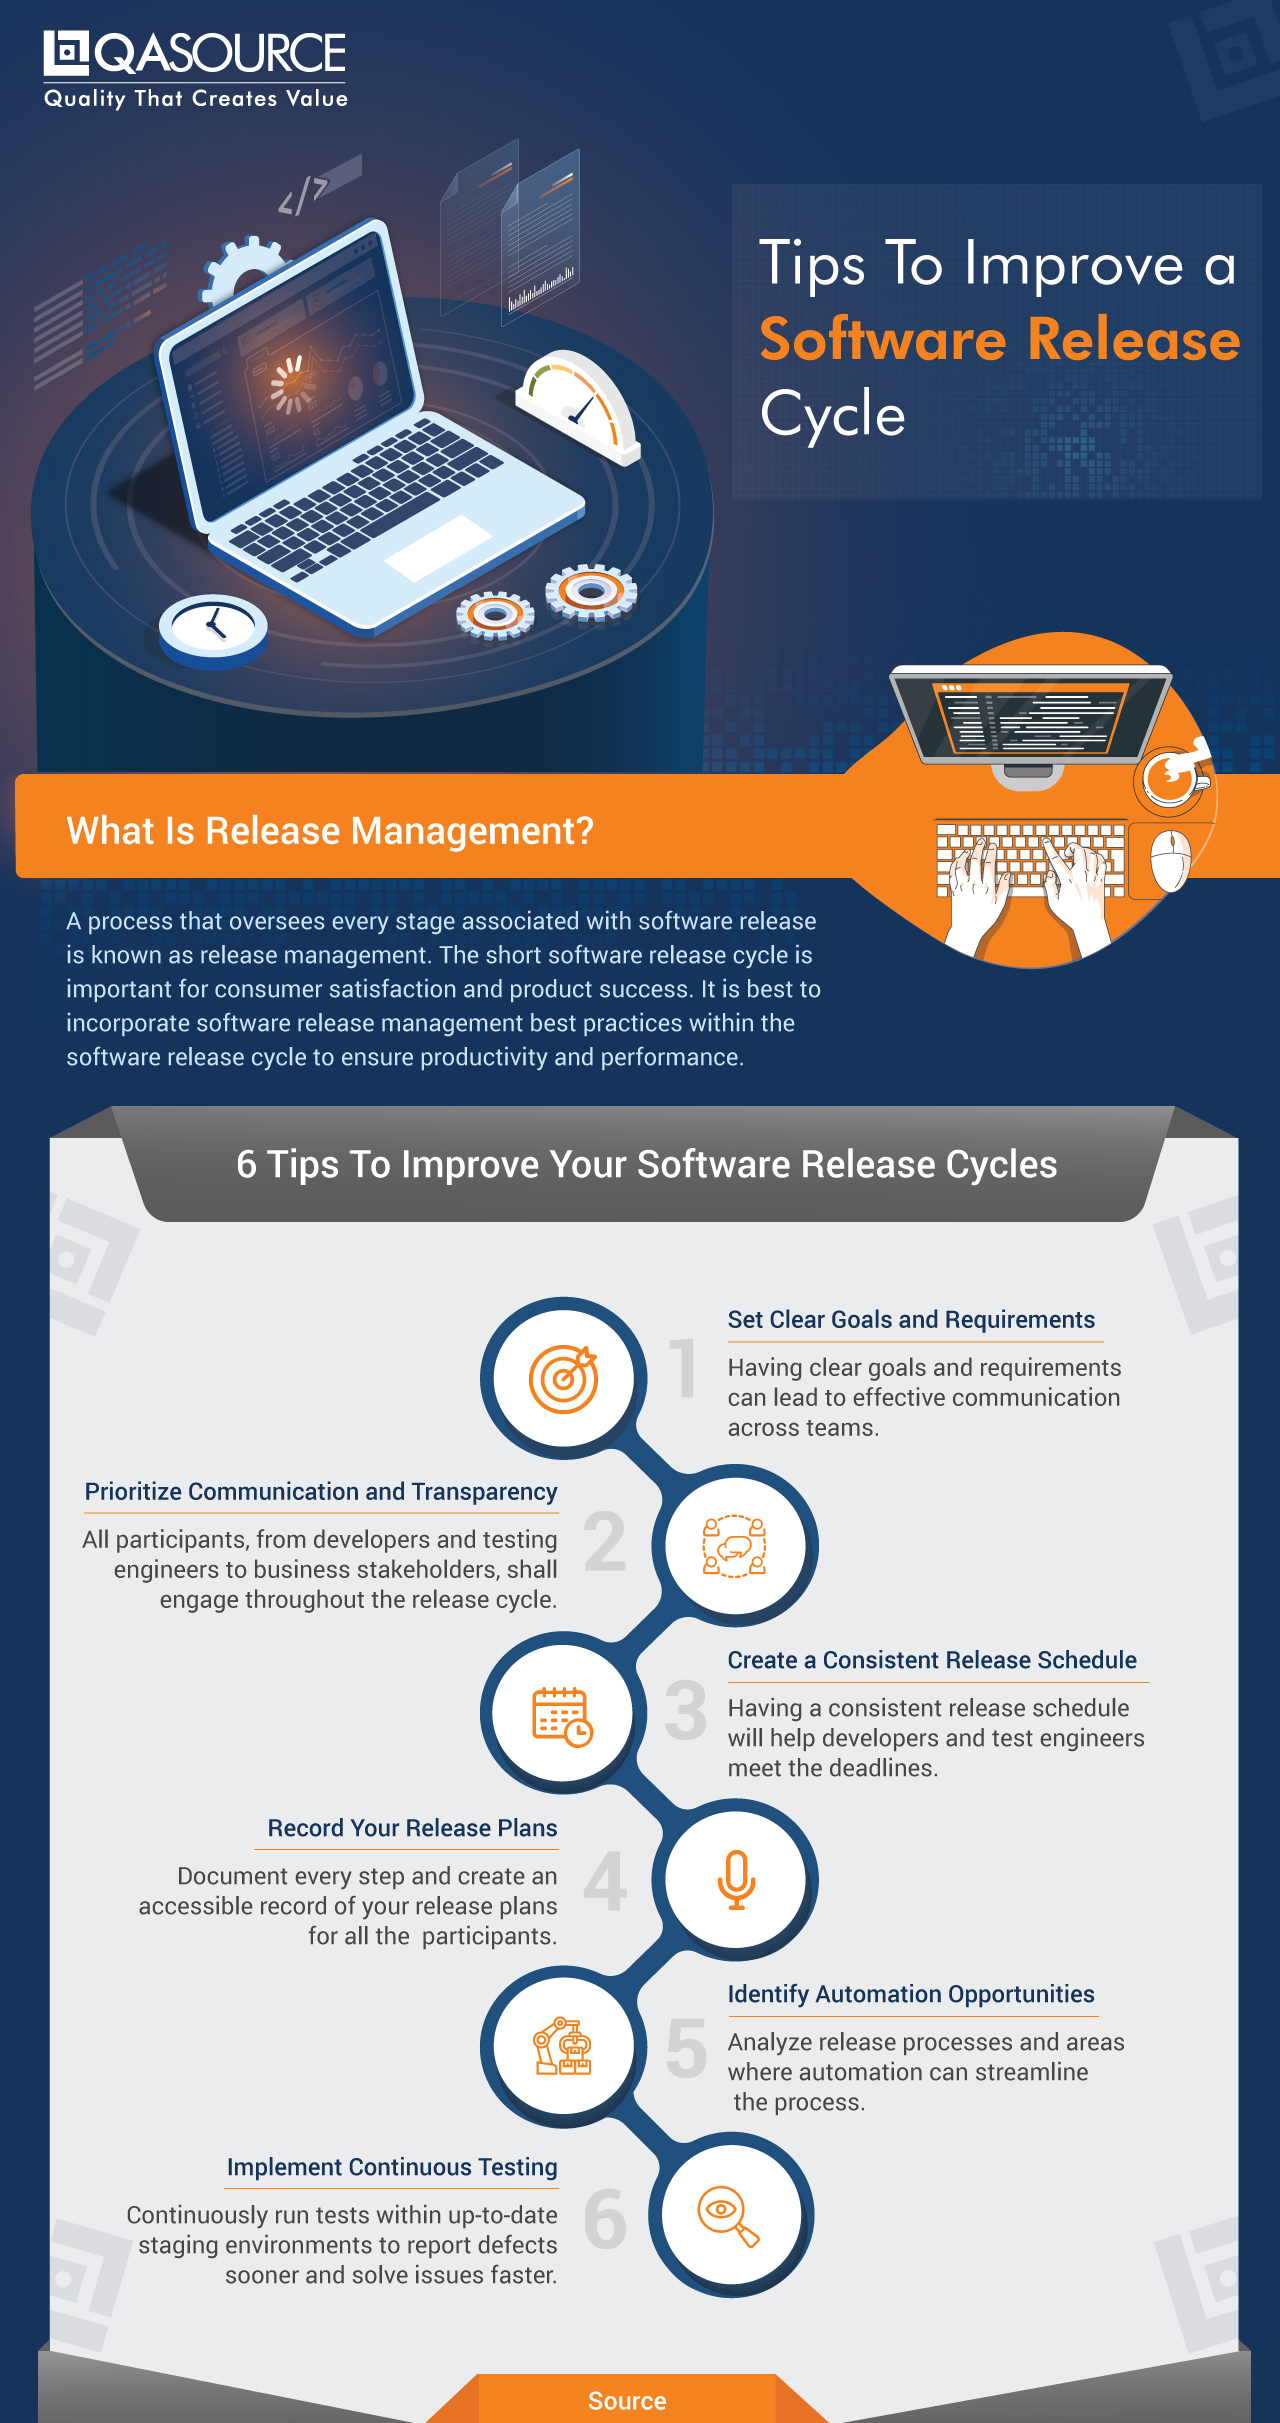 Tips To Improve a Software Release Cycle